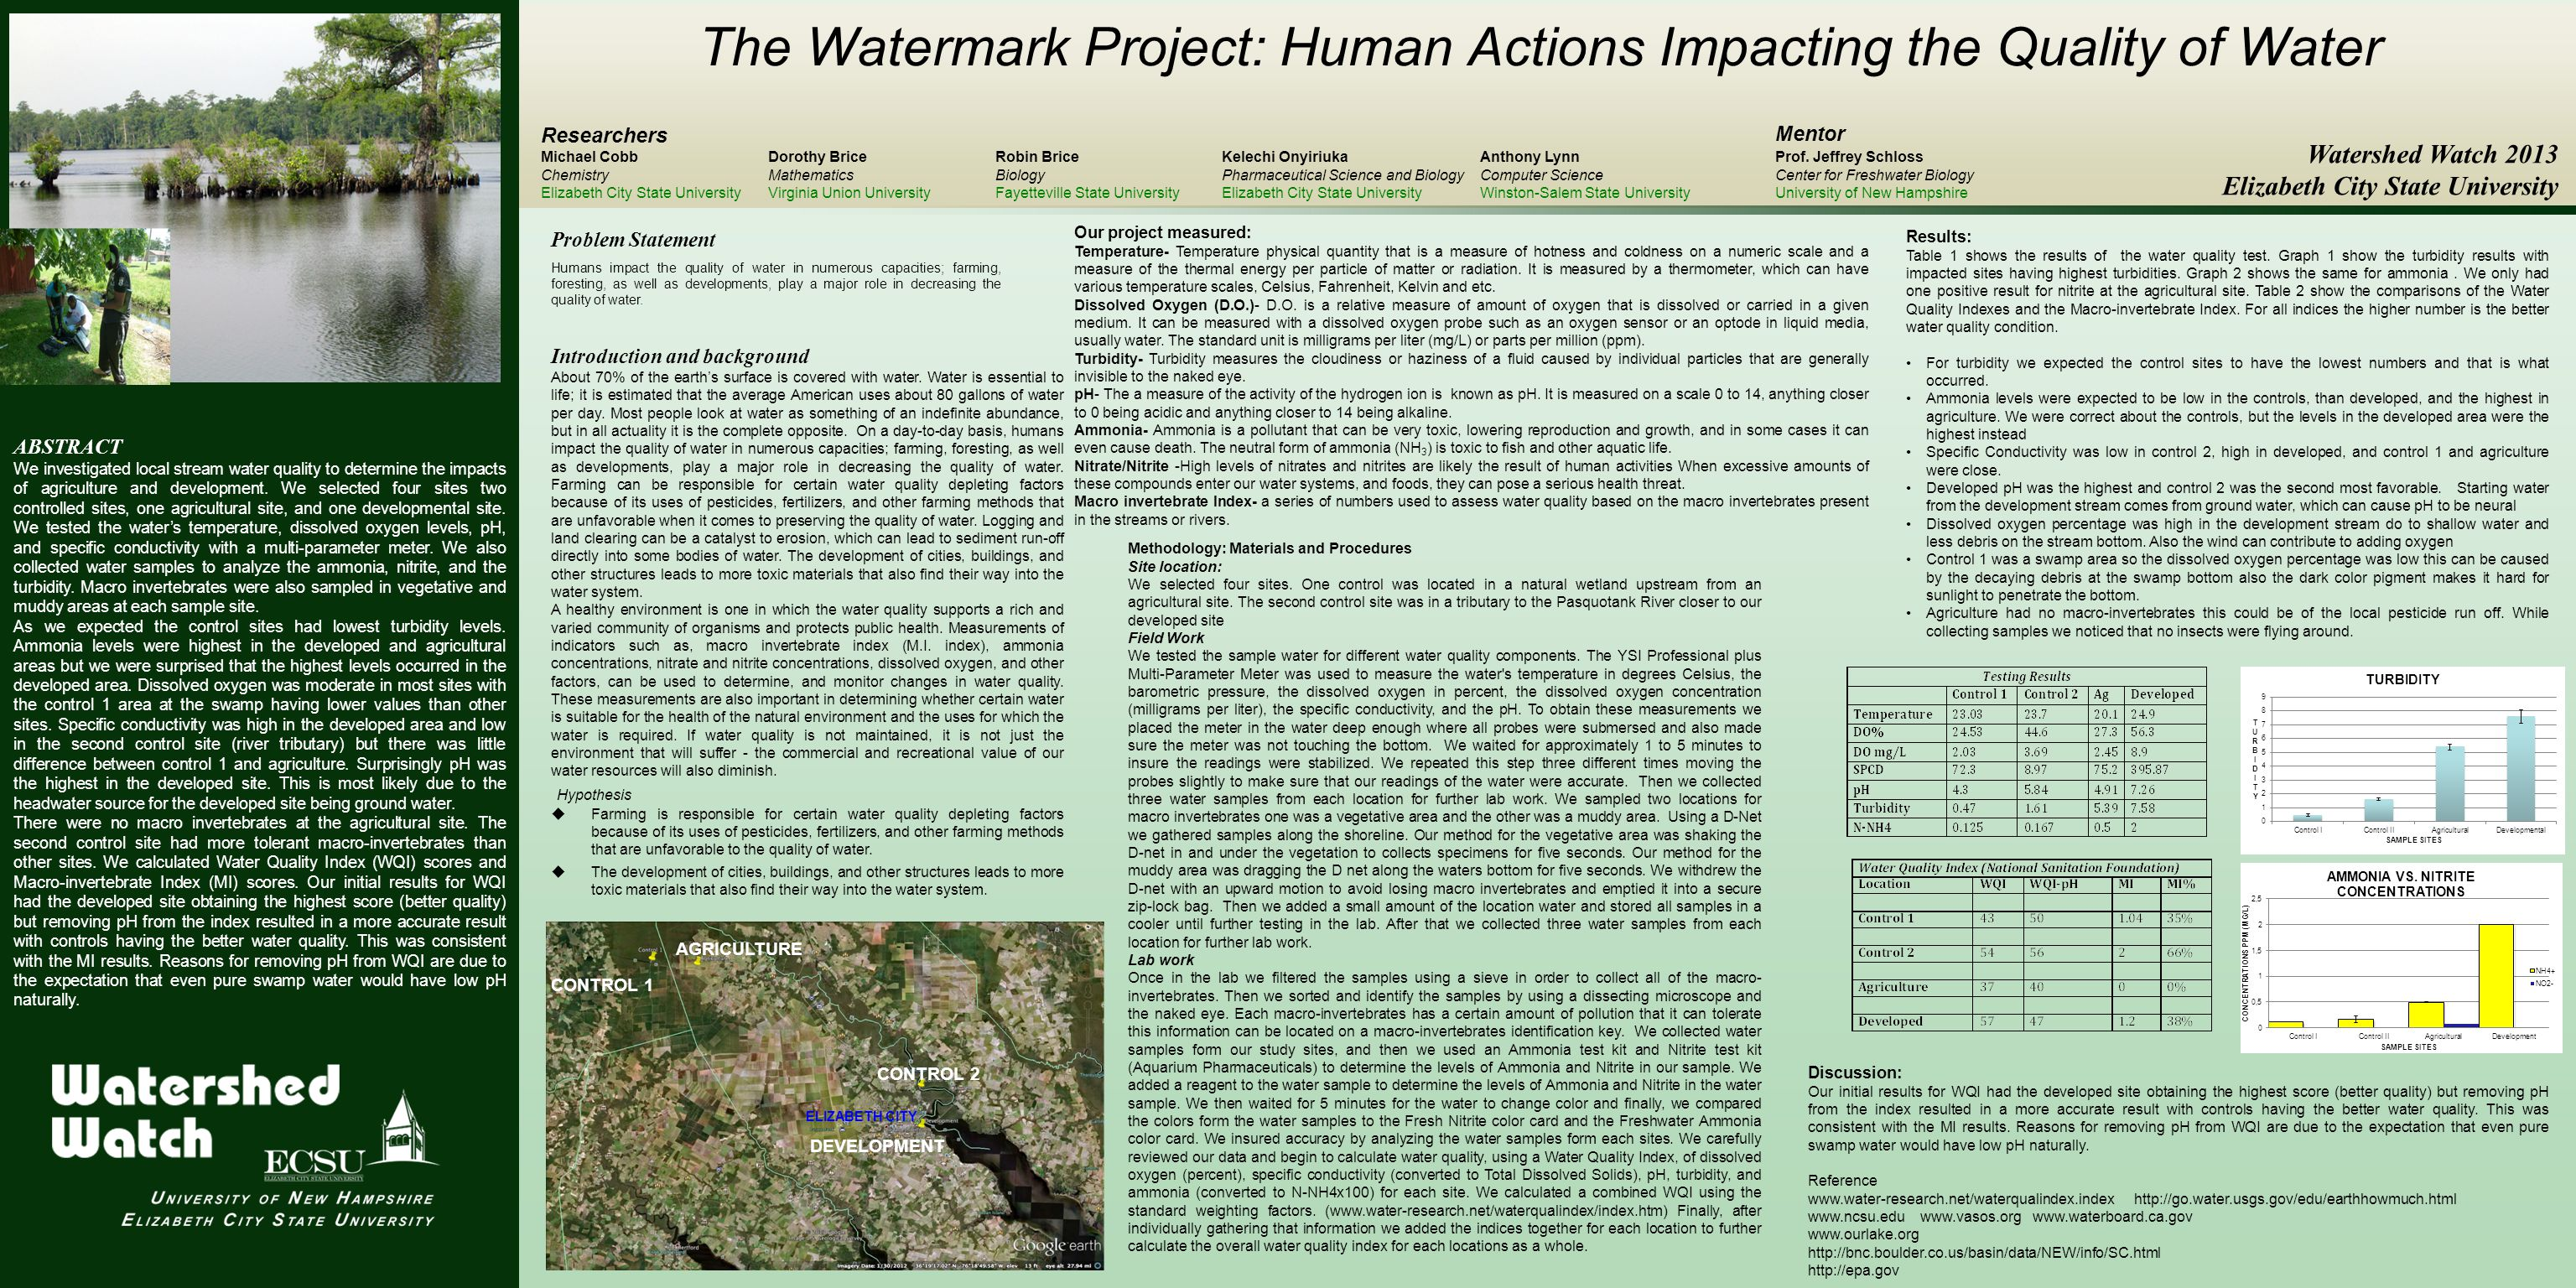 The Watermark Project: Human Actions Impacting the Quality of Water ABSTRACT We investigated local stream water quality to determine the impacts of agriculture and development.